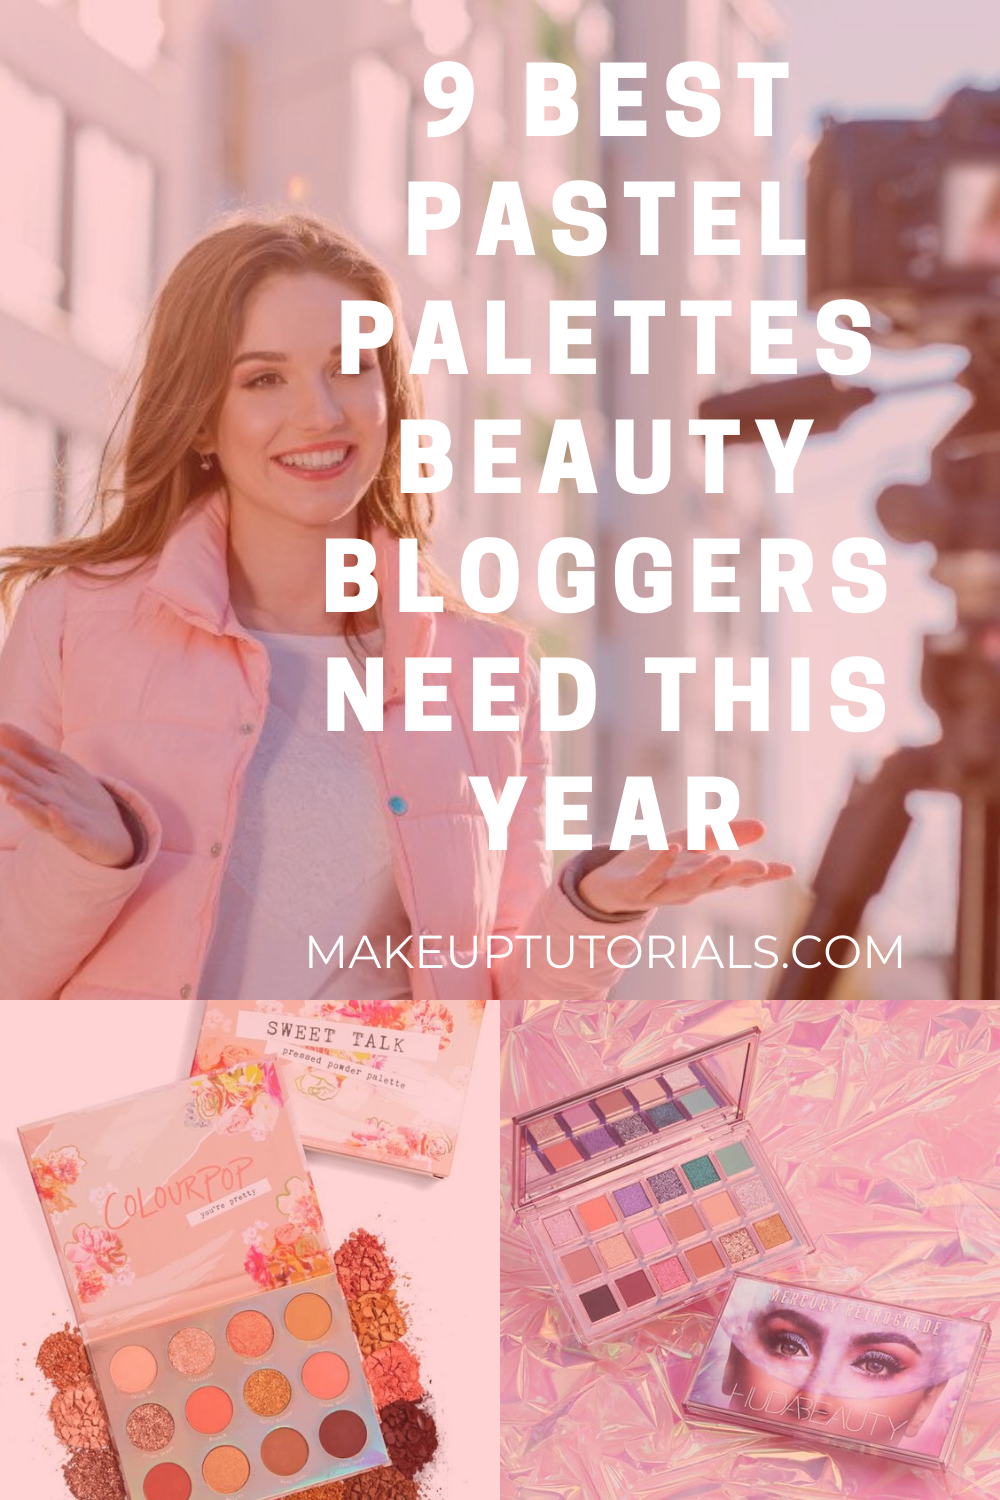 9 Best Pastel Palettes Beauty Bloggers Need This Year in